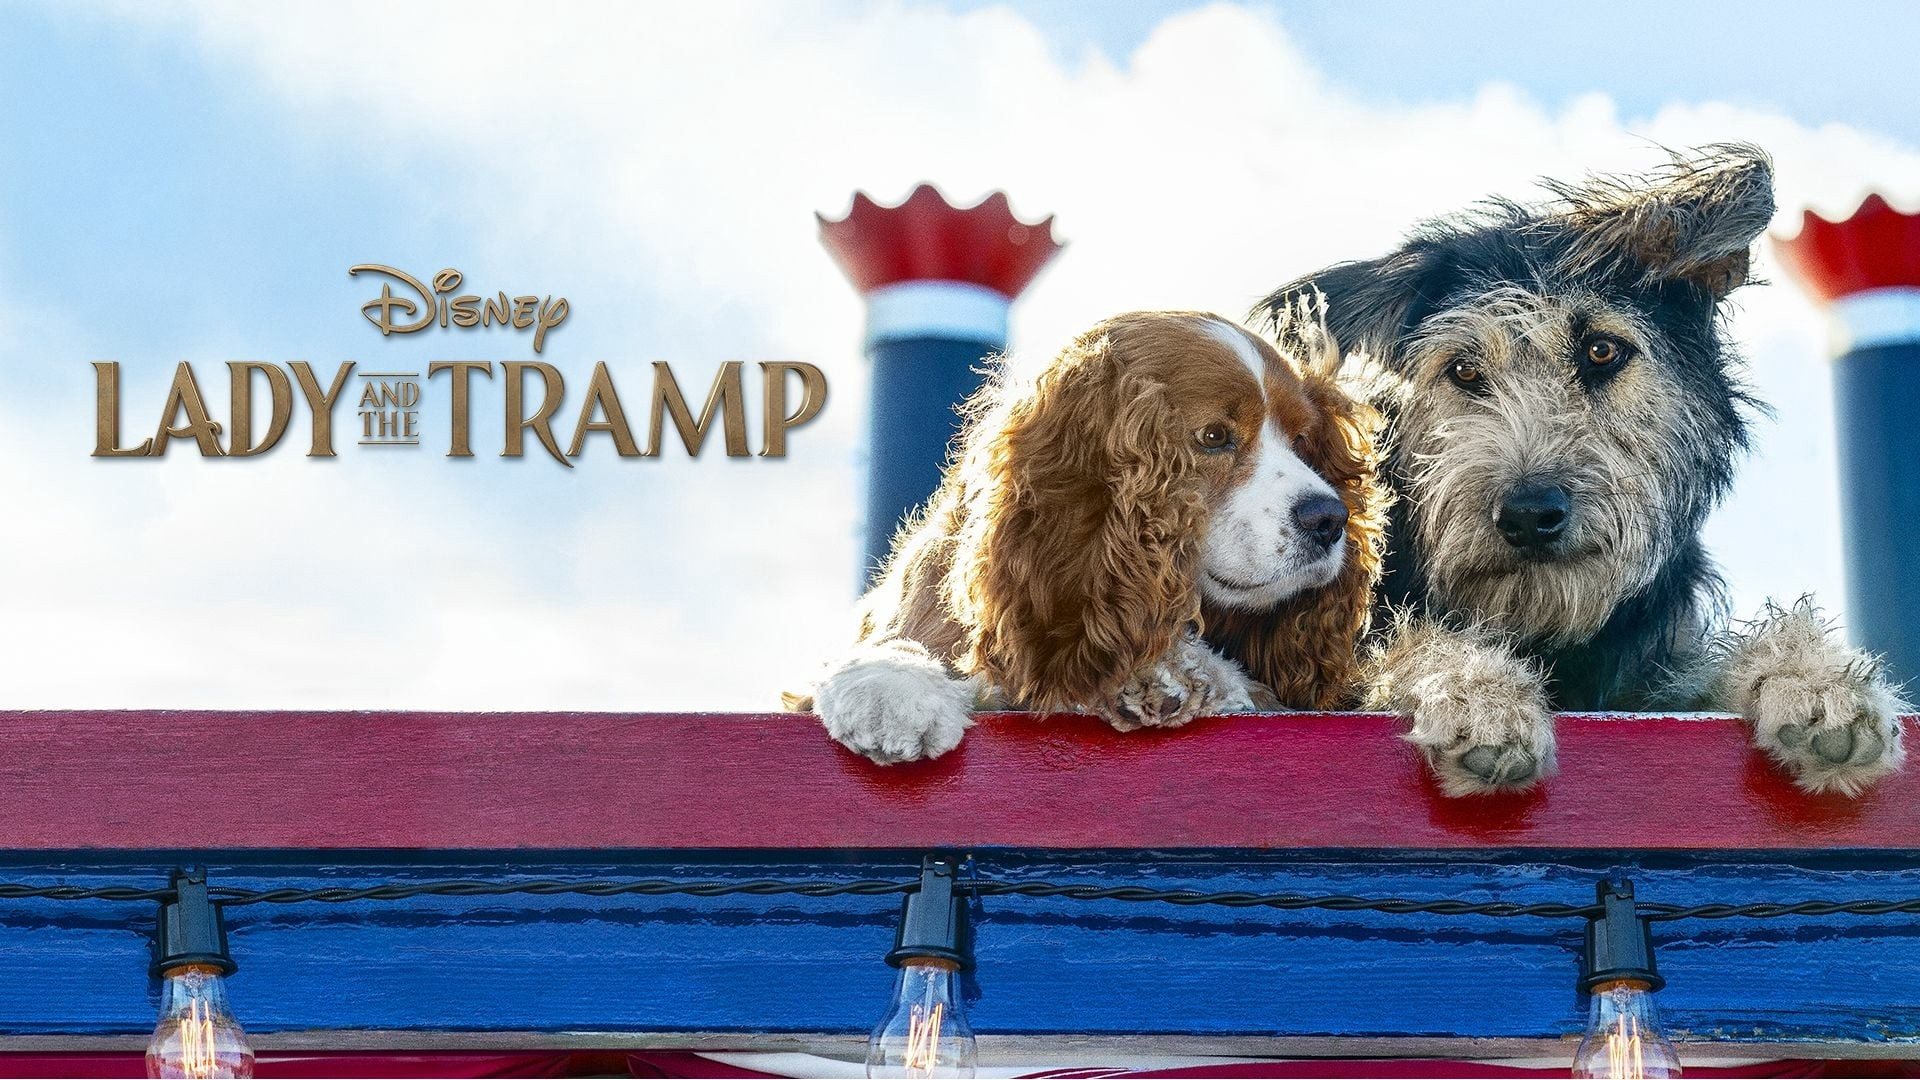 Lady And The Tramp 2019 Google Docs In Hd 720p 1080p By Gilangjancuk Medium